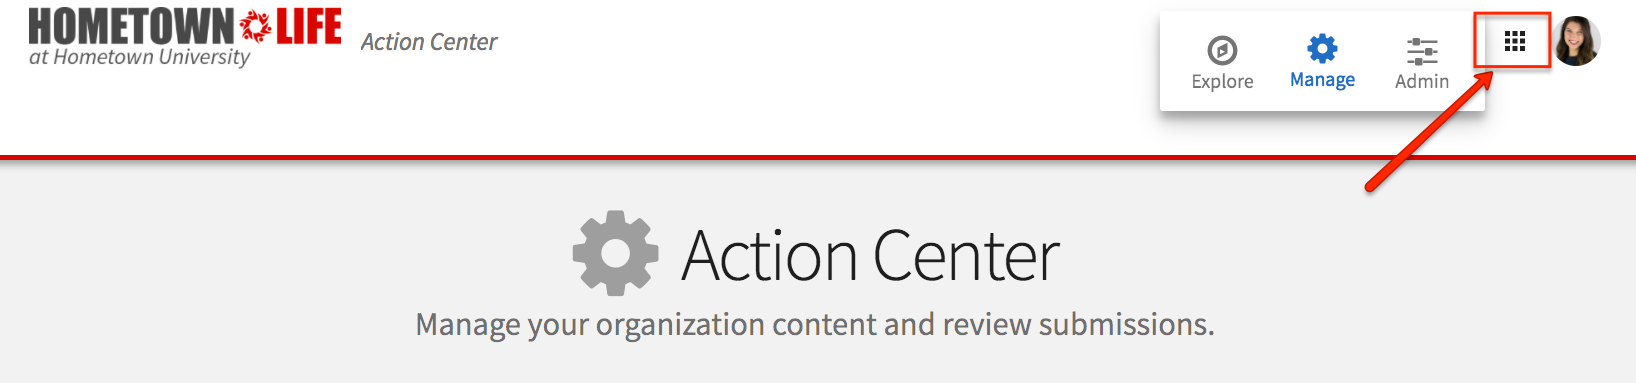 action_center_1.png